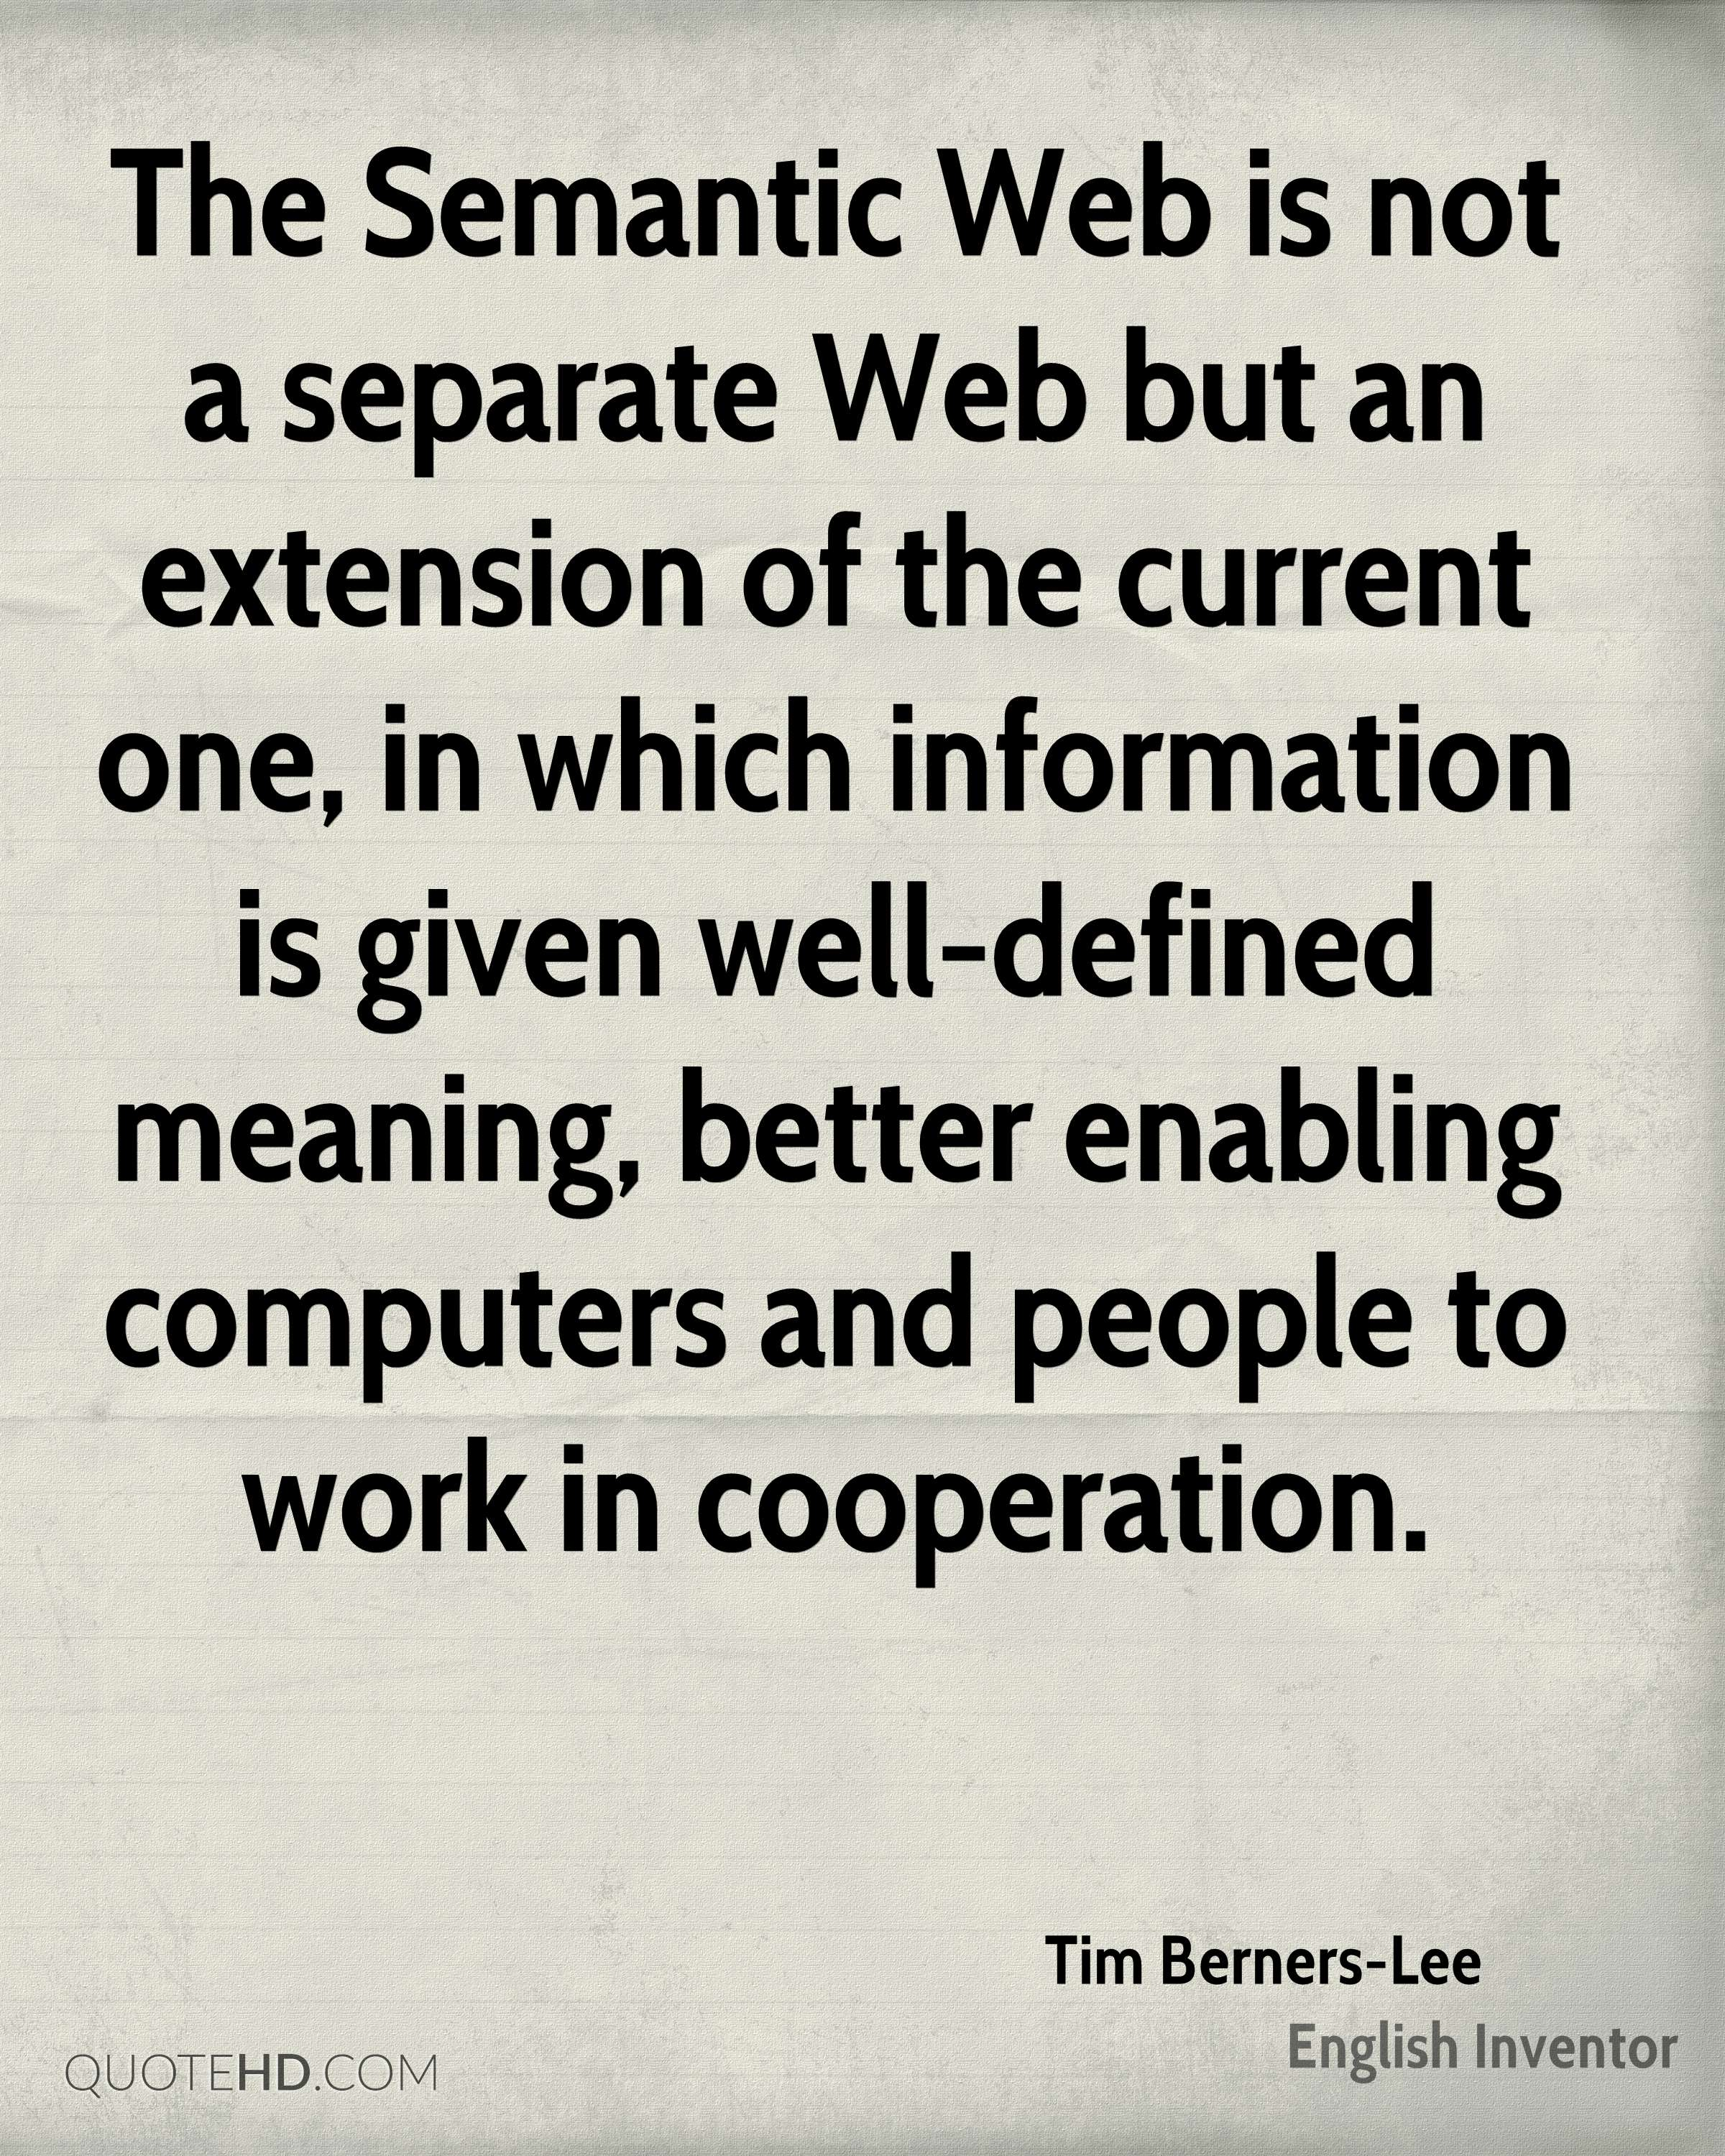 The Semantic Web is not a separate Web but an extension of the current one, in which information is given well-defined meaning, better enabling computers and people to work in cooperation.